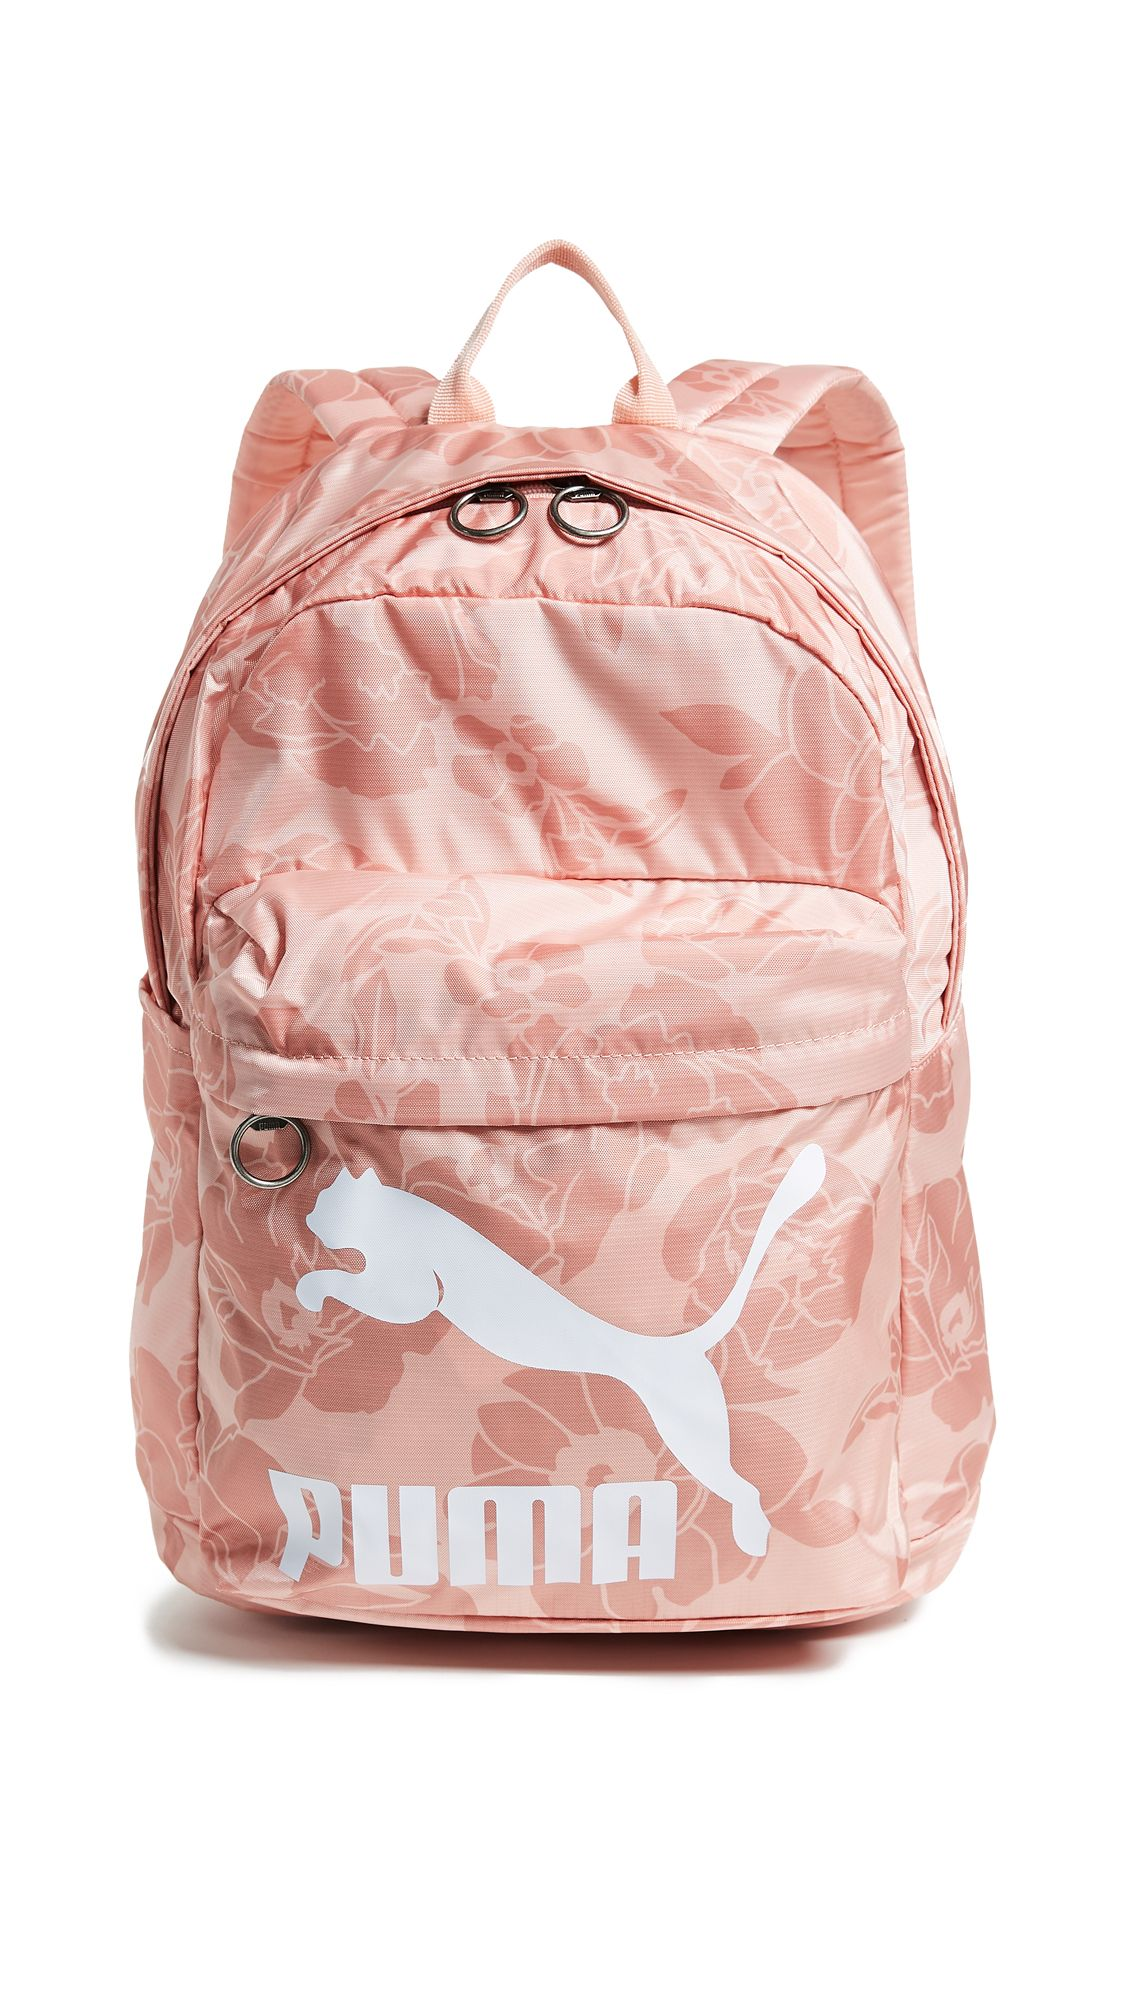 PUMA ORIGINALS BACKPACK.  puma  bags  nylon  backpacks    4e70f7bc0ca0f